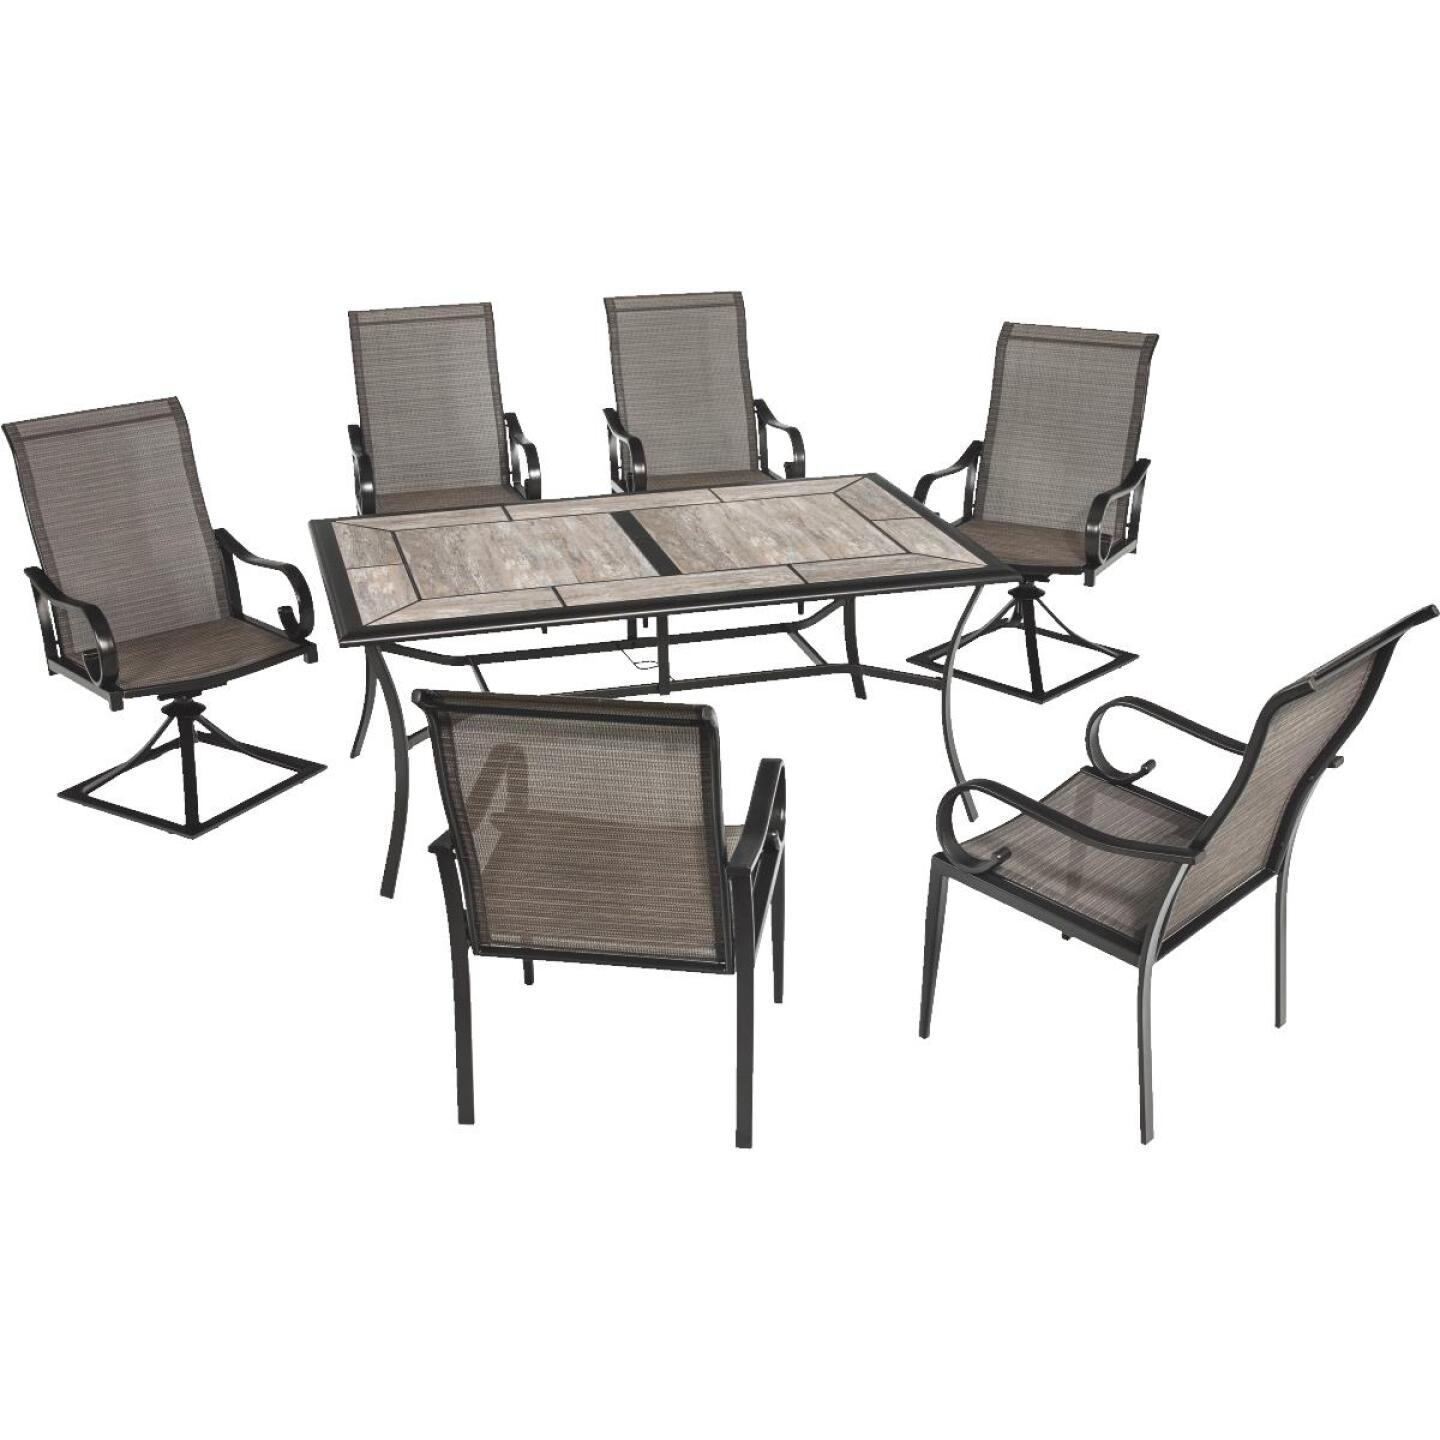 Outdoor Expressions Berkshire 7-Piece Dining Set Image 172